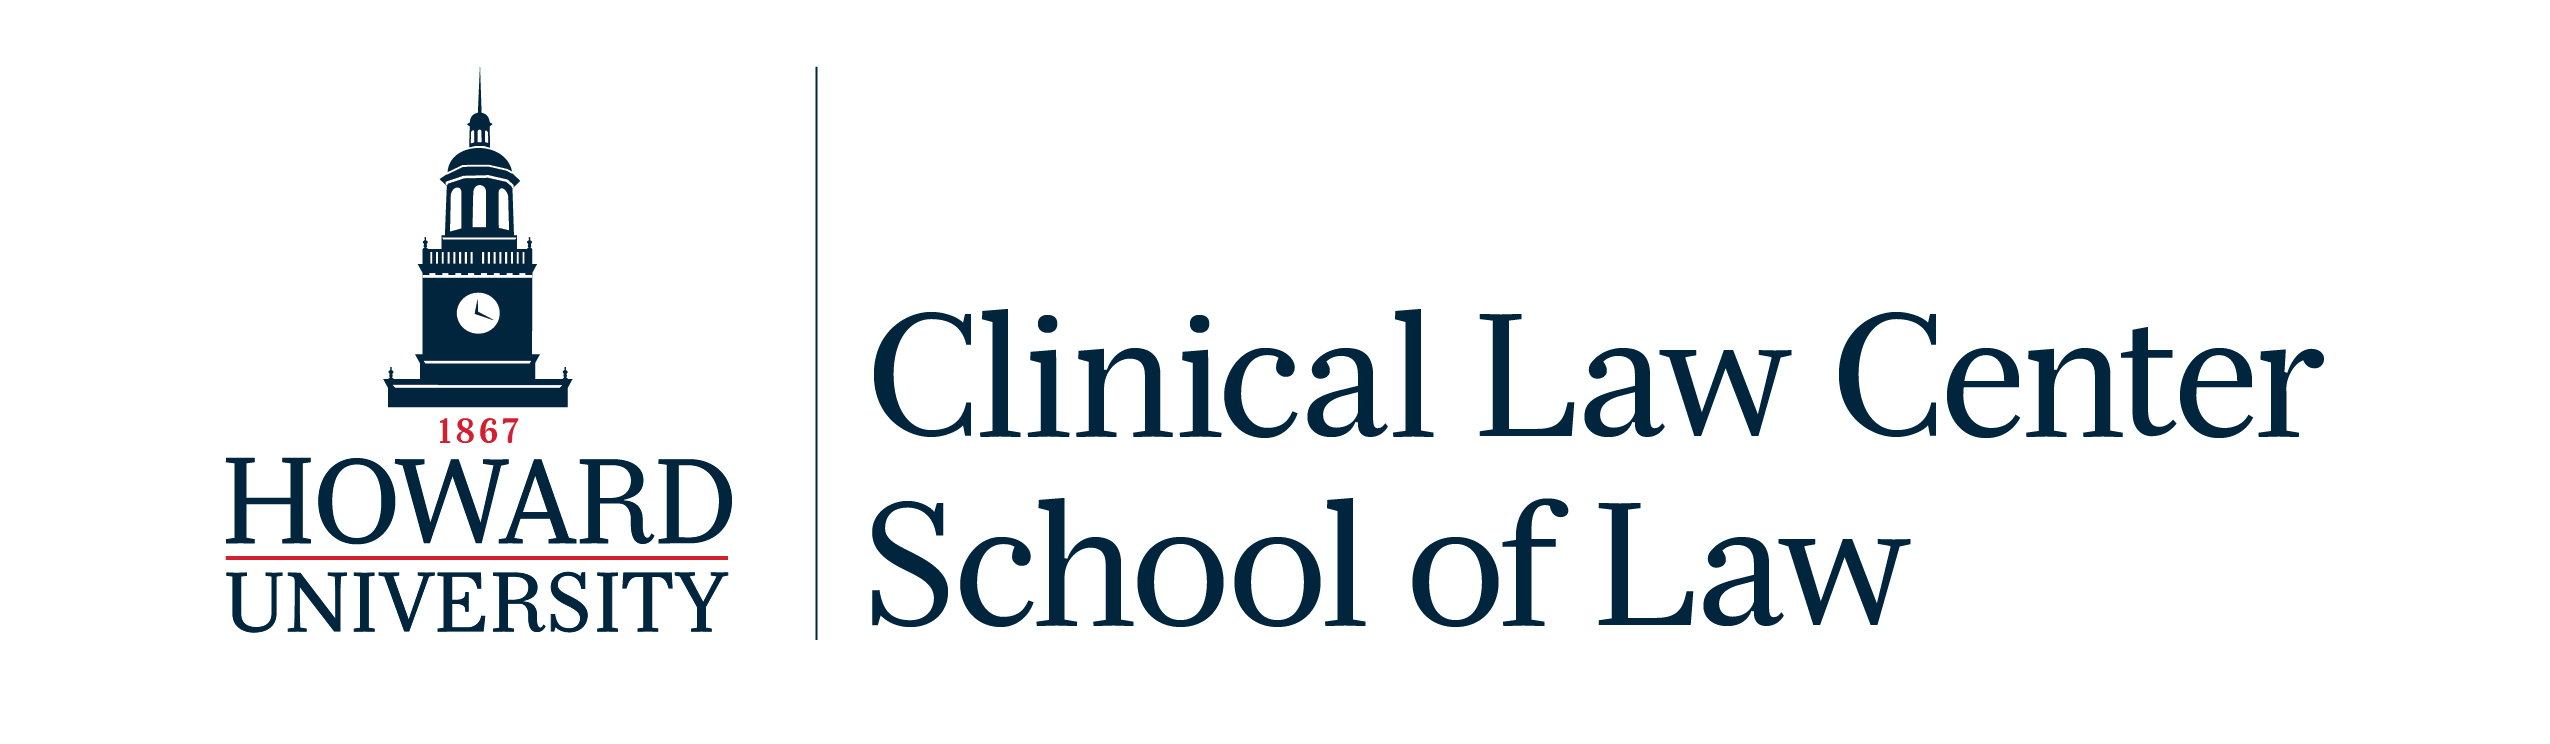 Clinical Law Center Logo